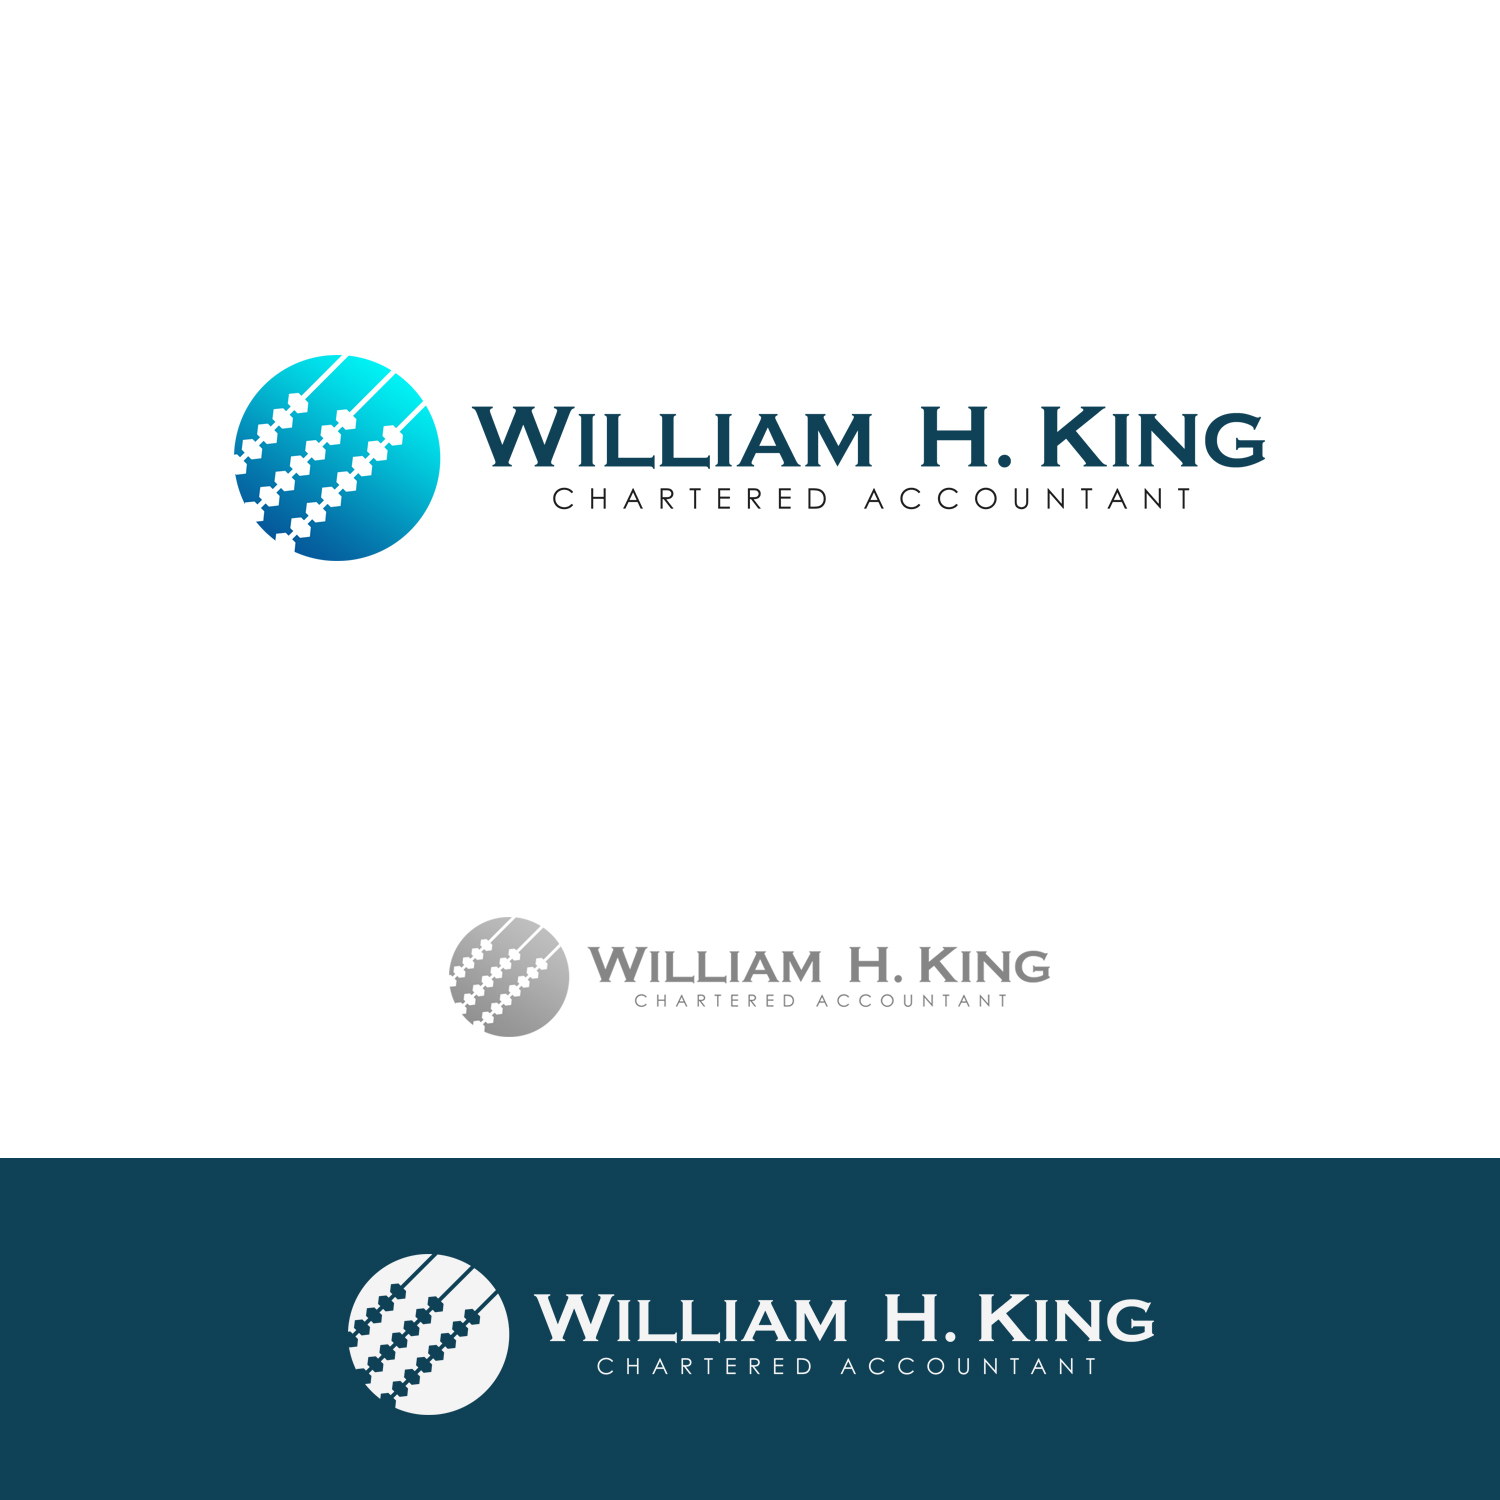 Logo Design by omARTist - Entry No. 195 in the Logo Design Contest New Logo Design for William H. King, Chartered Accountant.